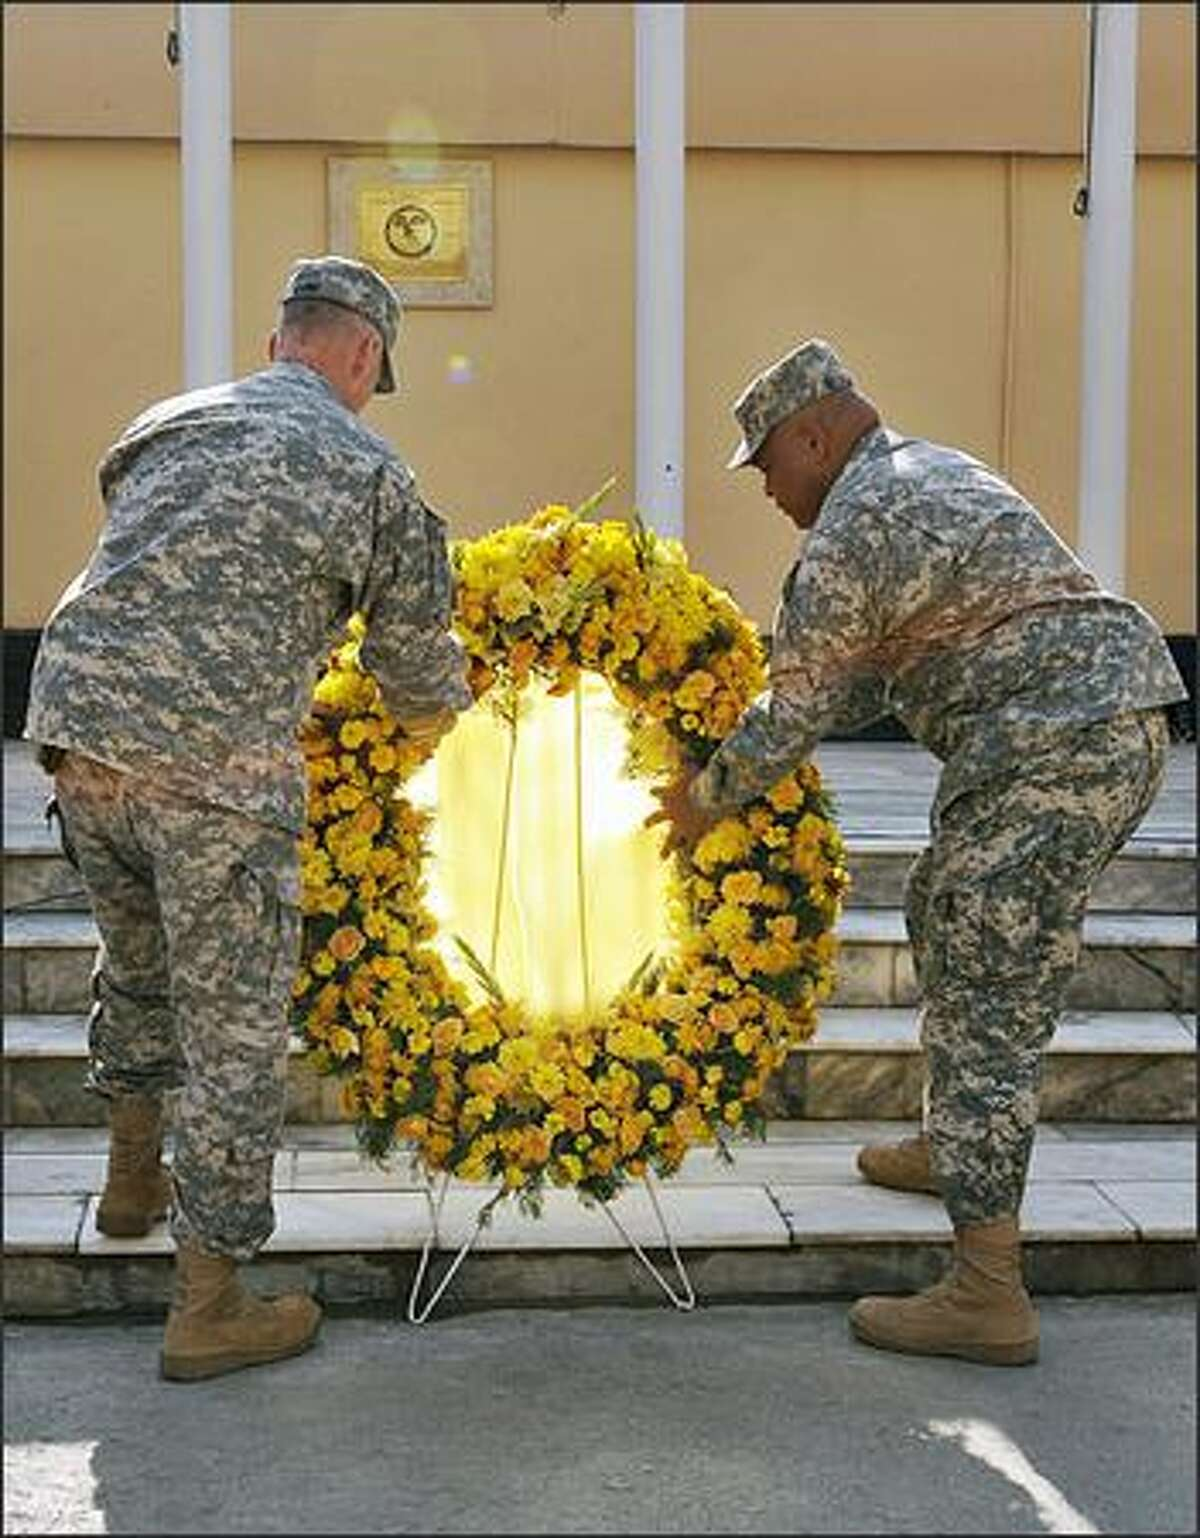 U.S. soldiers lay a wreath during a ceremony for Veterans Day at Camp Eggers in Kabul on Tuesday.